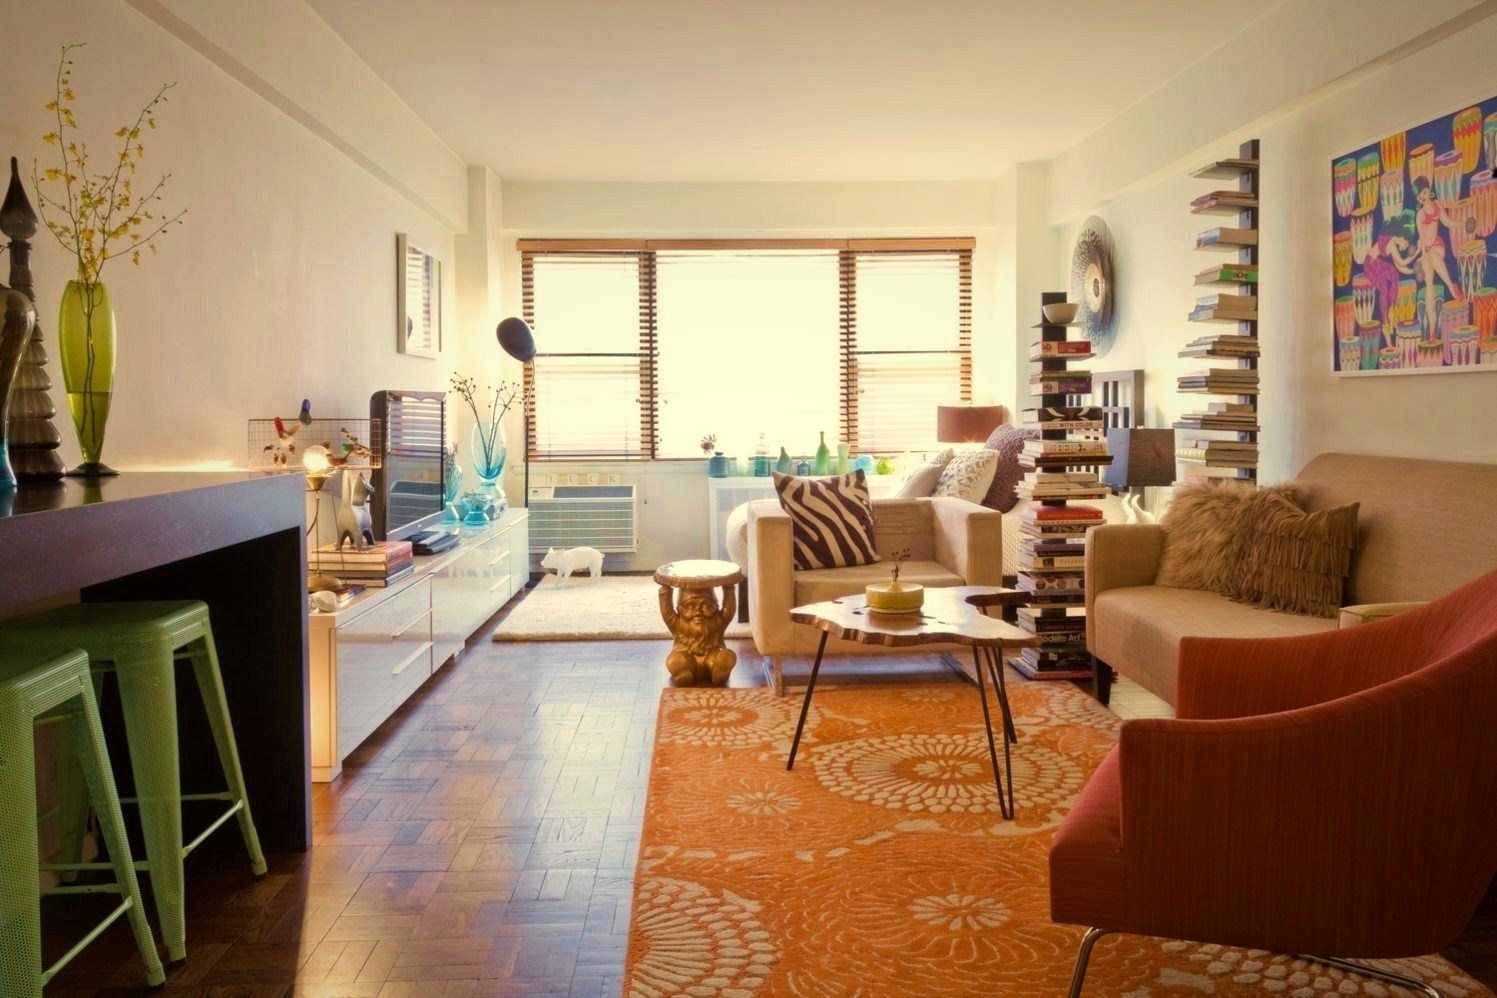 https://elonahome.com/wp-content/uploads/2020/07/Colorful-apartment-idea-of-Micro-Duplex-Apartment-in-NYC-4.jpg